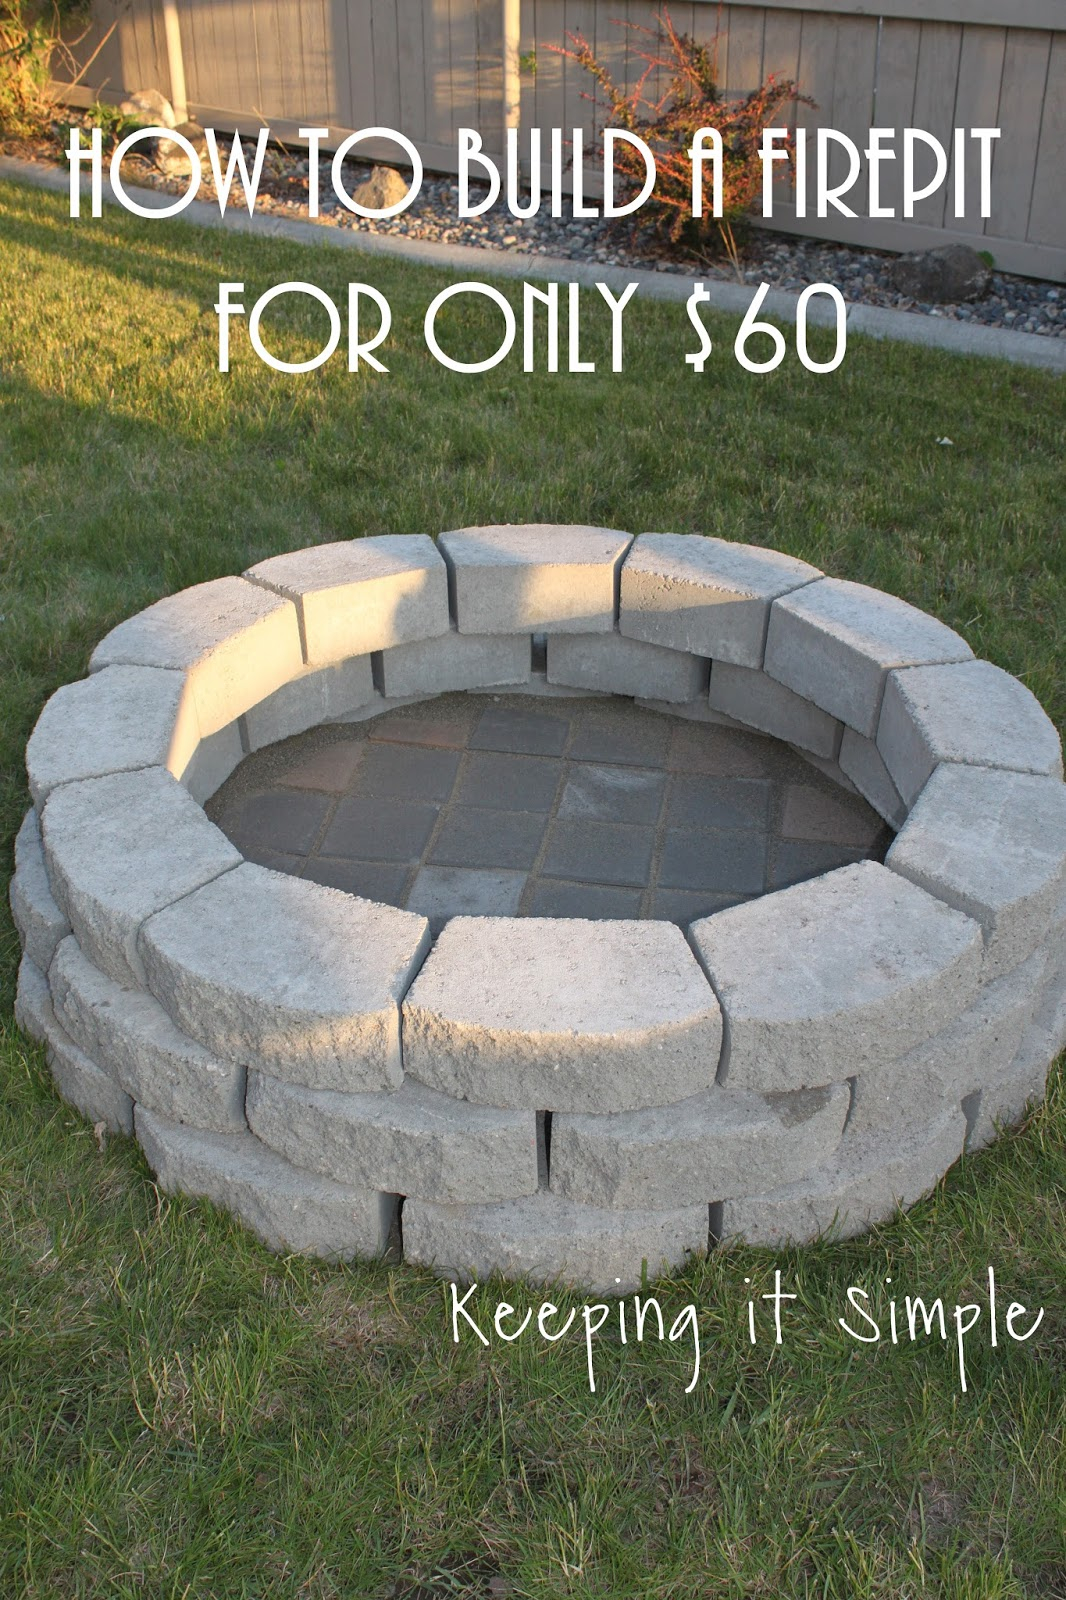 How To Build A Diy Fire Pit For Only 60 Keeping It Simple regarding 13 Smart Ways How to Craft Backyard Rock Fire Pit Ideas